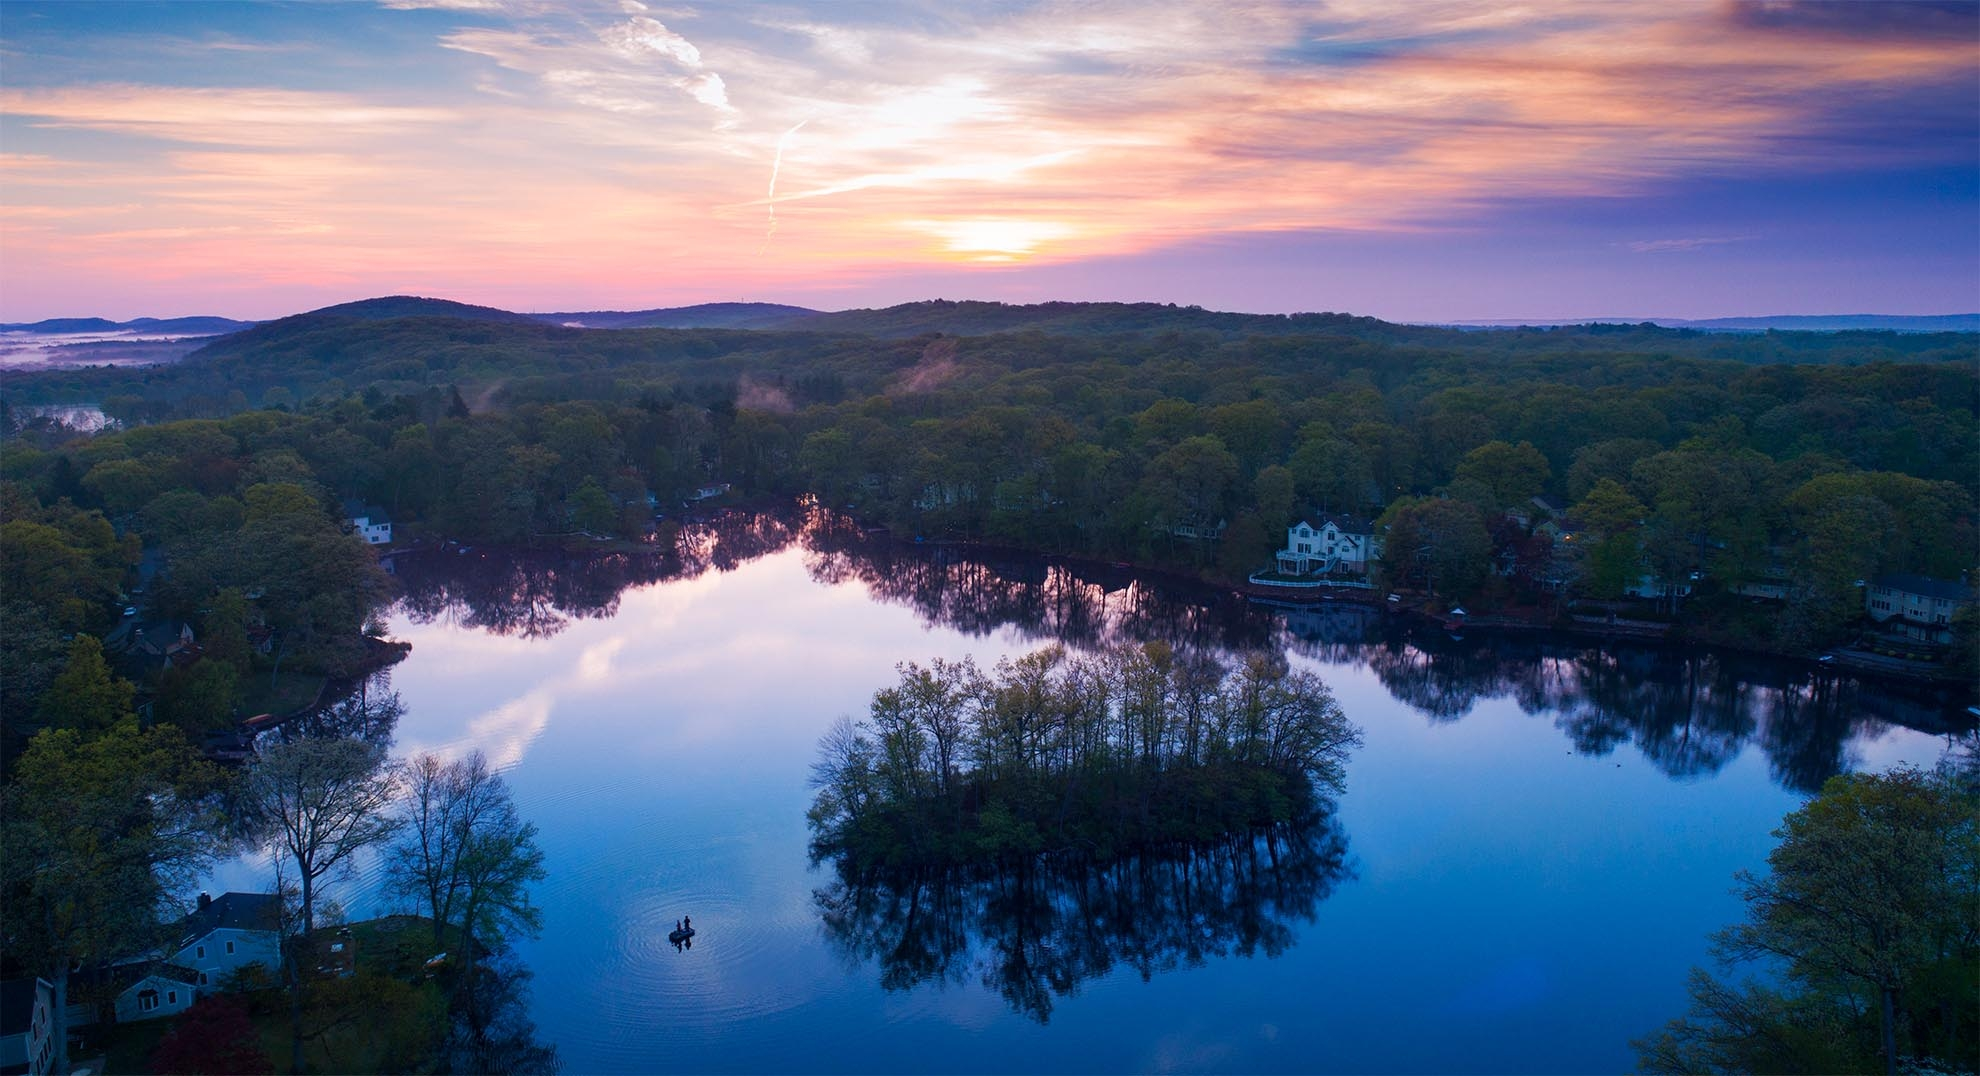 Photograph of sunrise over Lake Arrowhead NJ taken with a drone